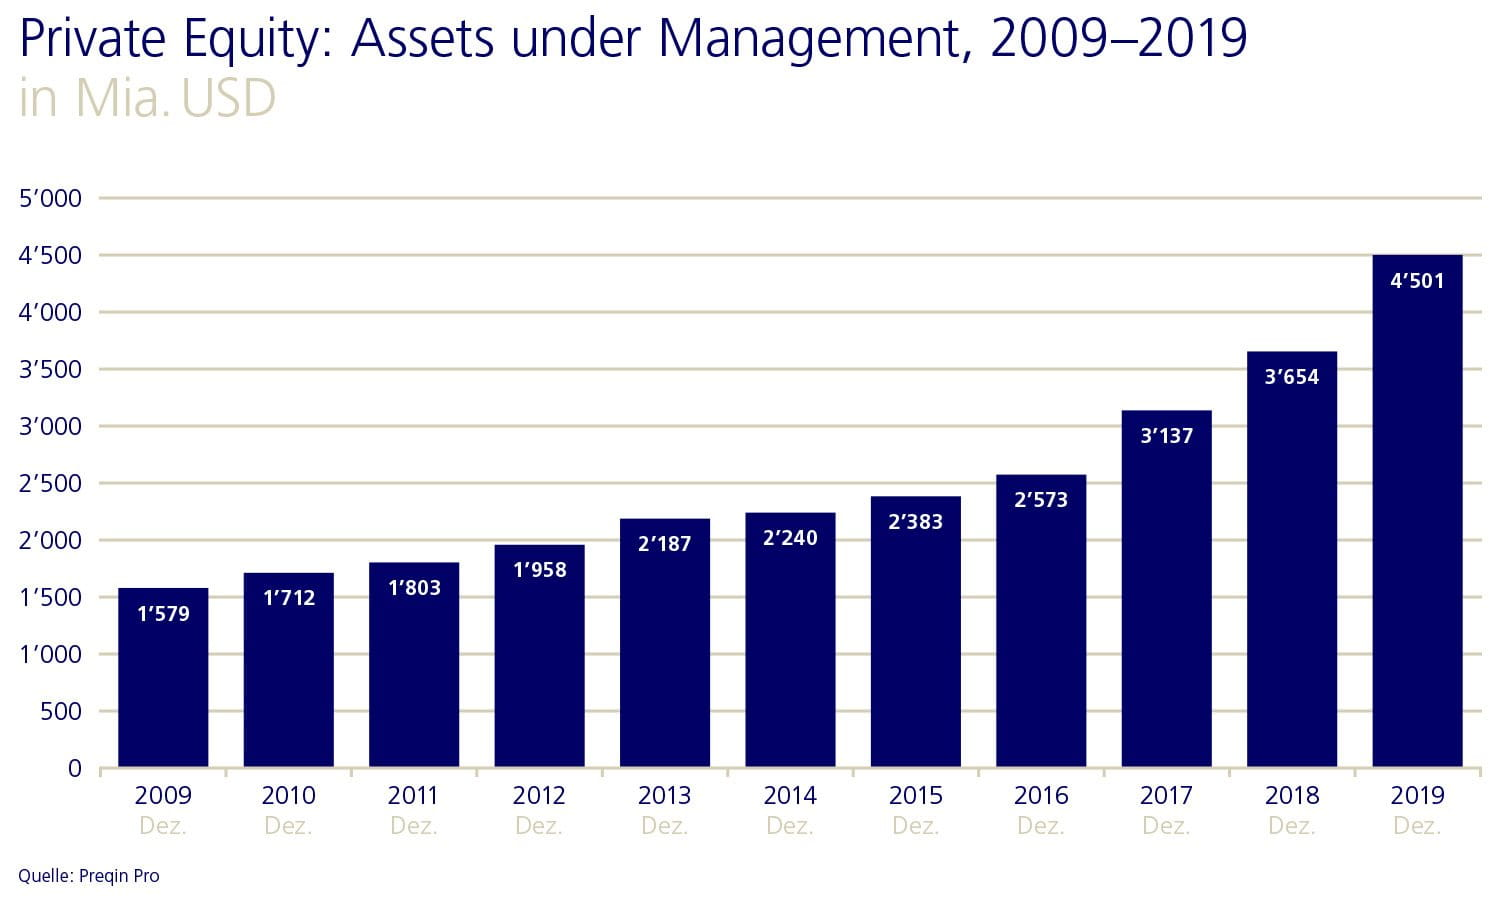 Private Equity: Assets under Management, 2009-2019